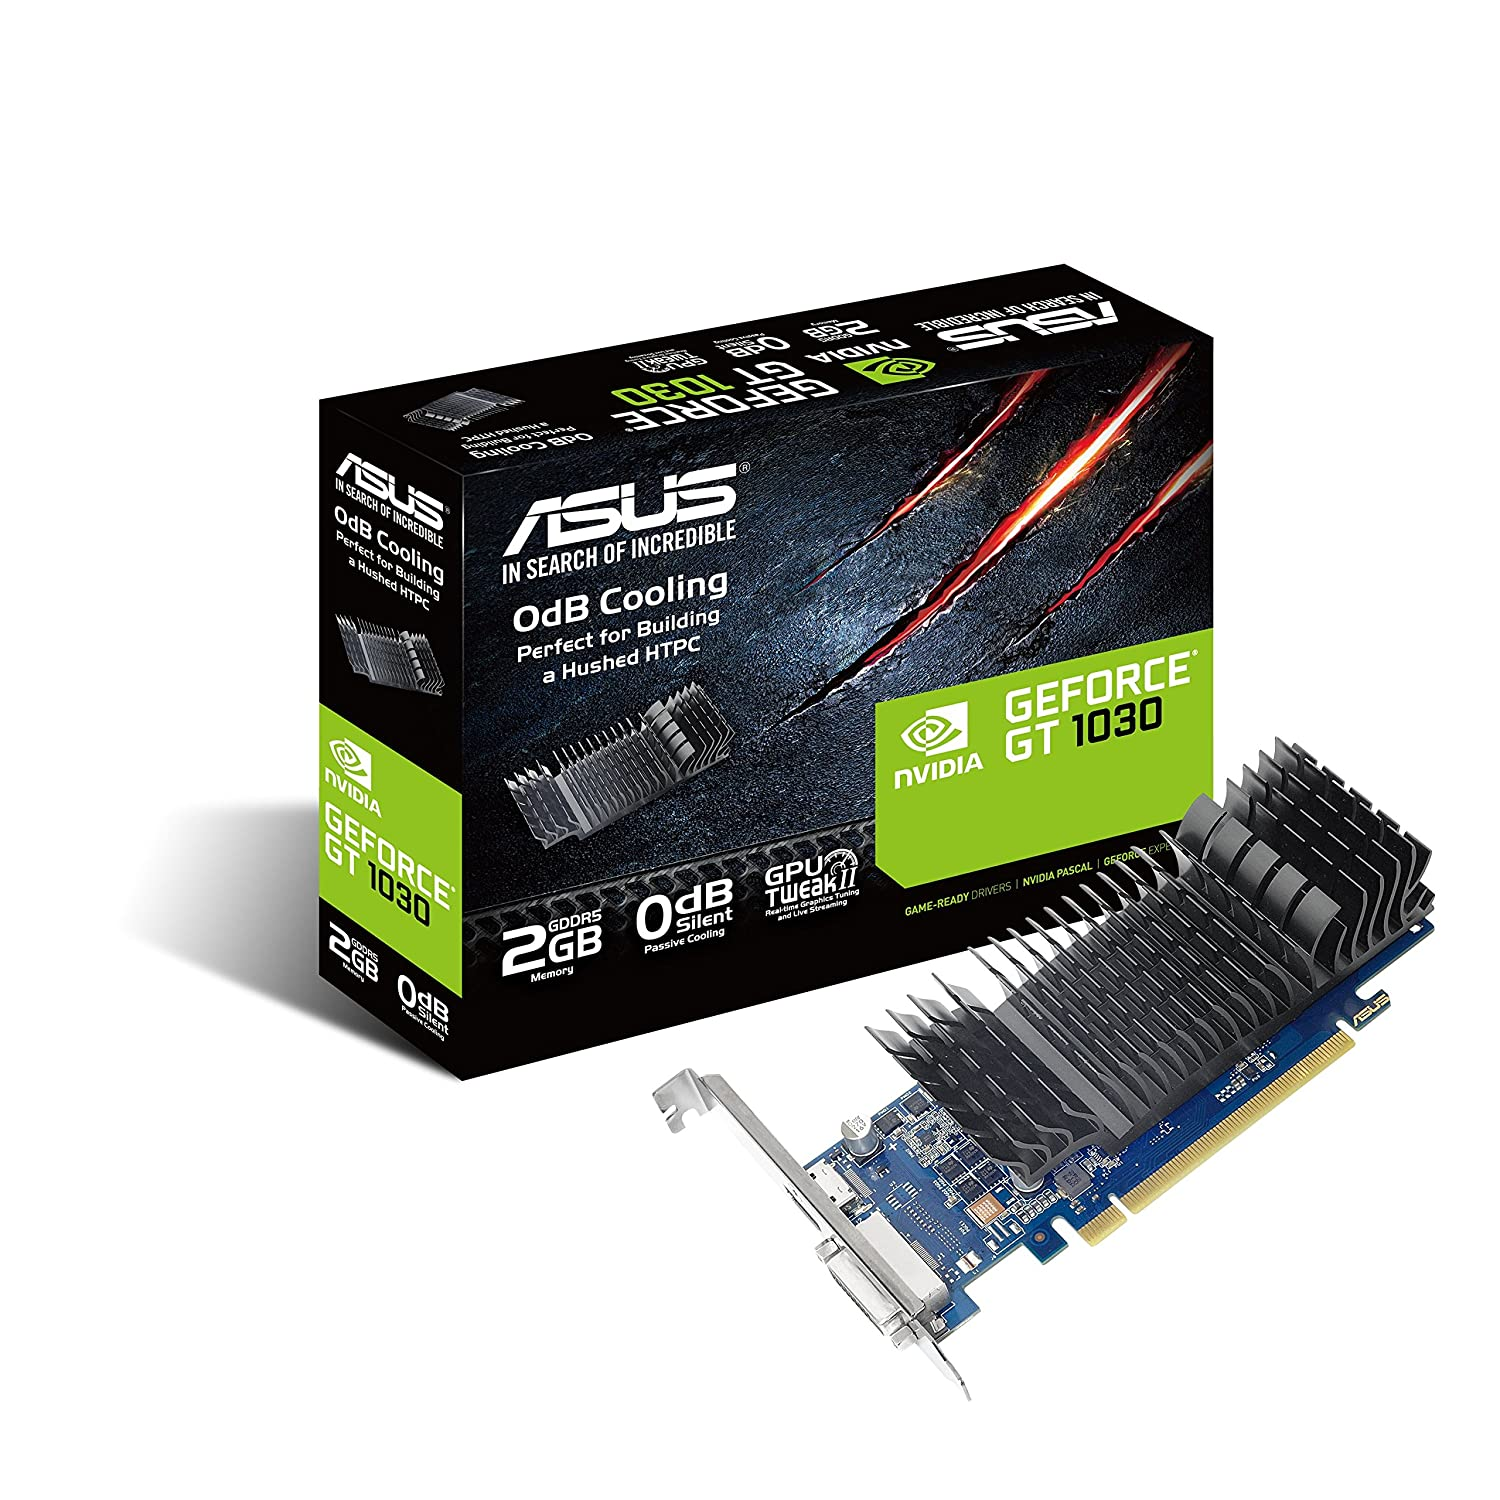 Buy Asus Geforce Pascal Gt 1030 2gb Gddr5 64bit Graphics Back Gallery For Parallel Circuit Definition Kids Card Silent Htpc Build With I O Port Brackets Online At Low Prices In India